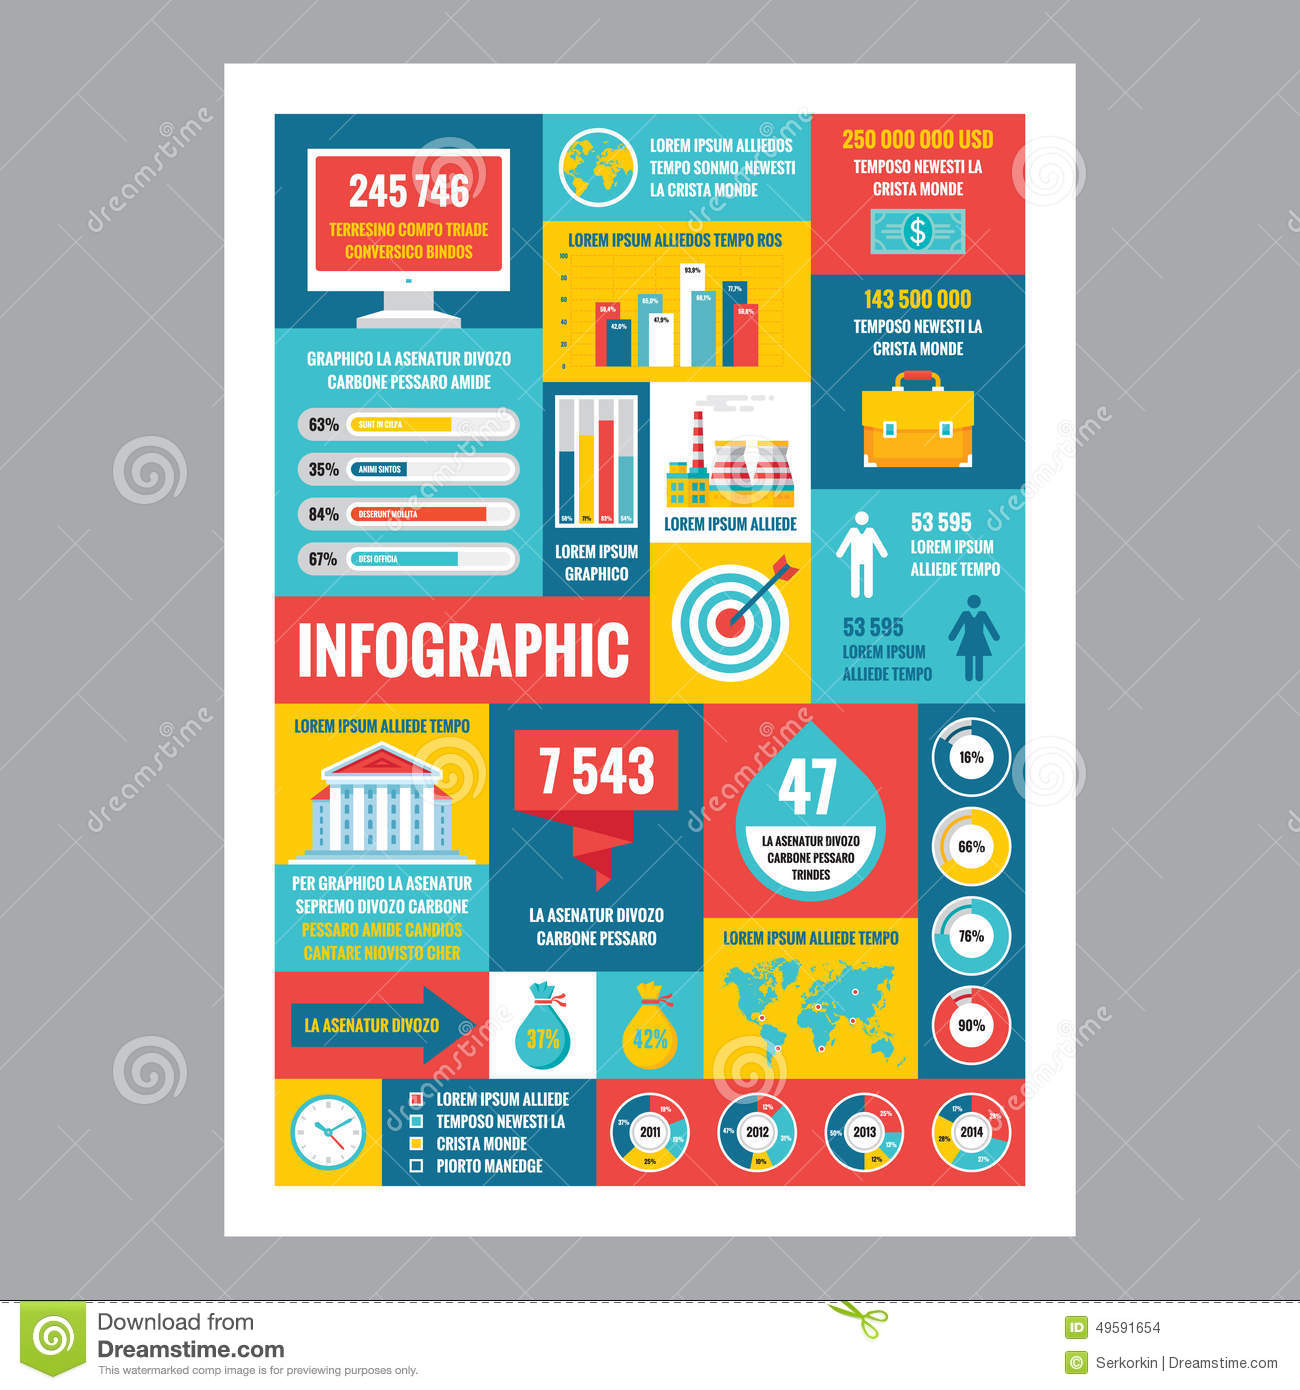 Business Plan Graphic Design Sample